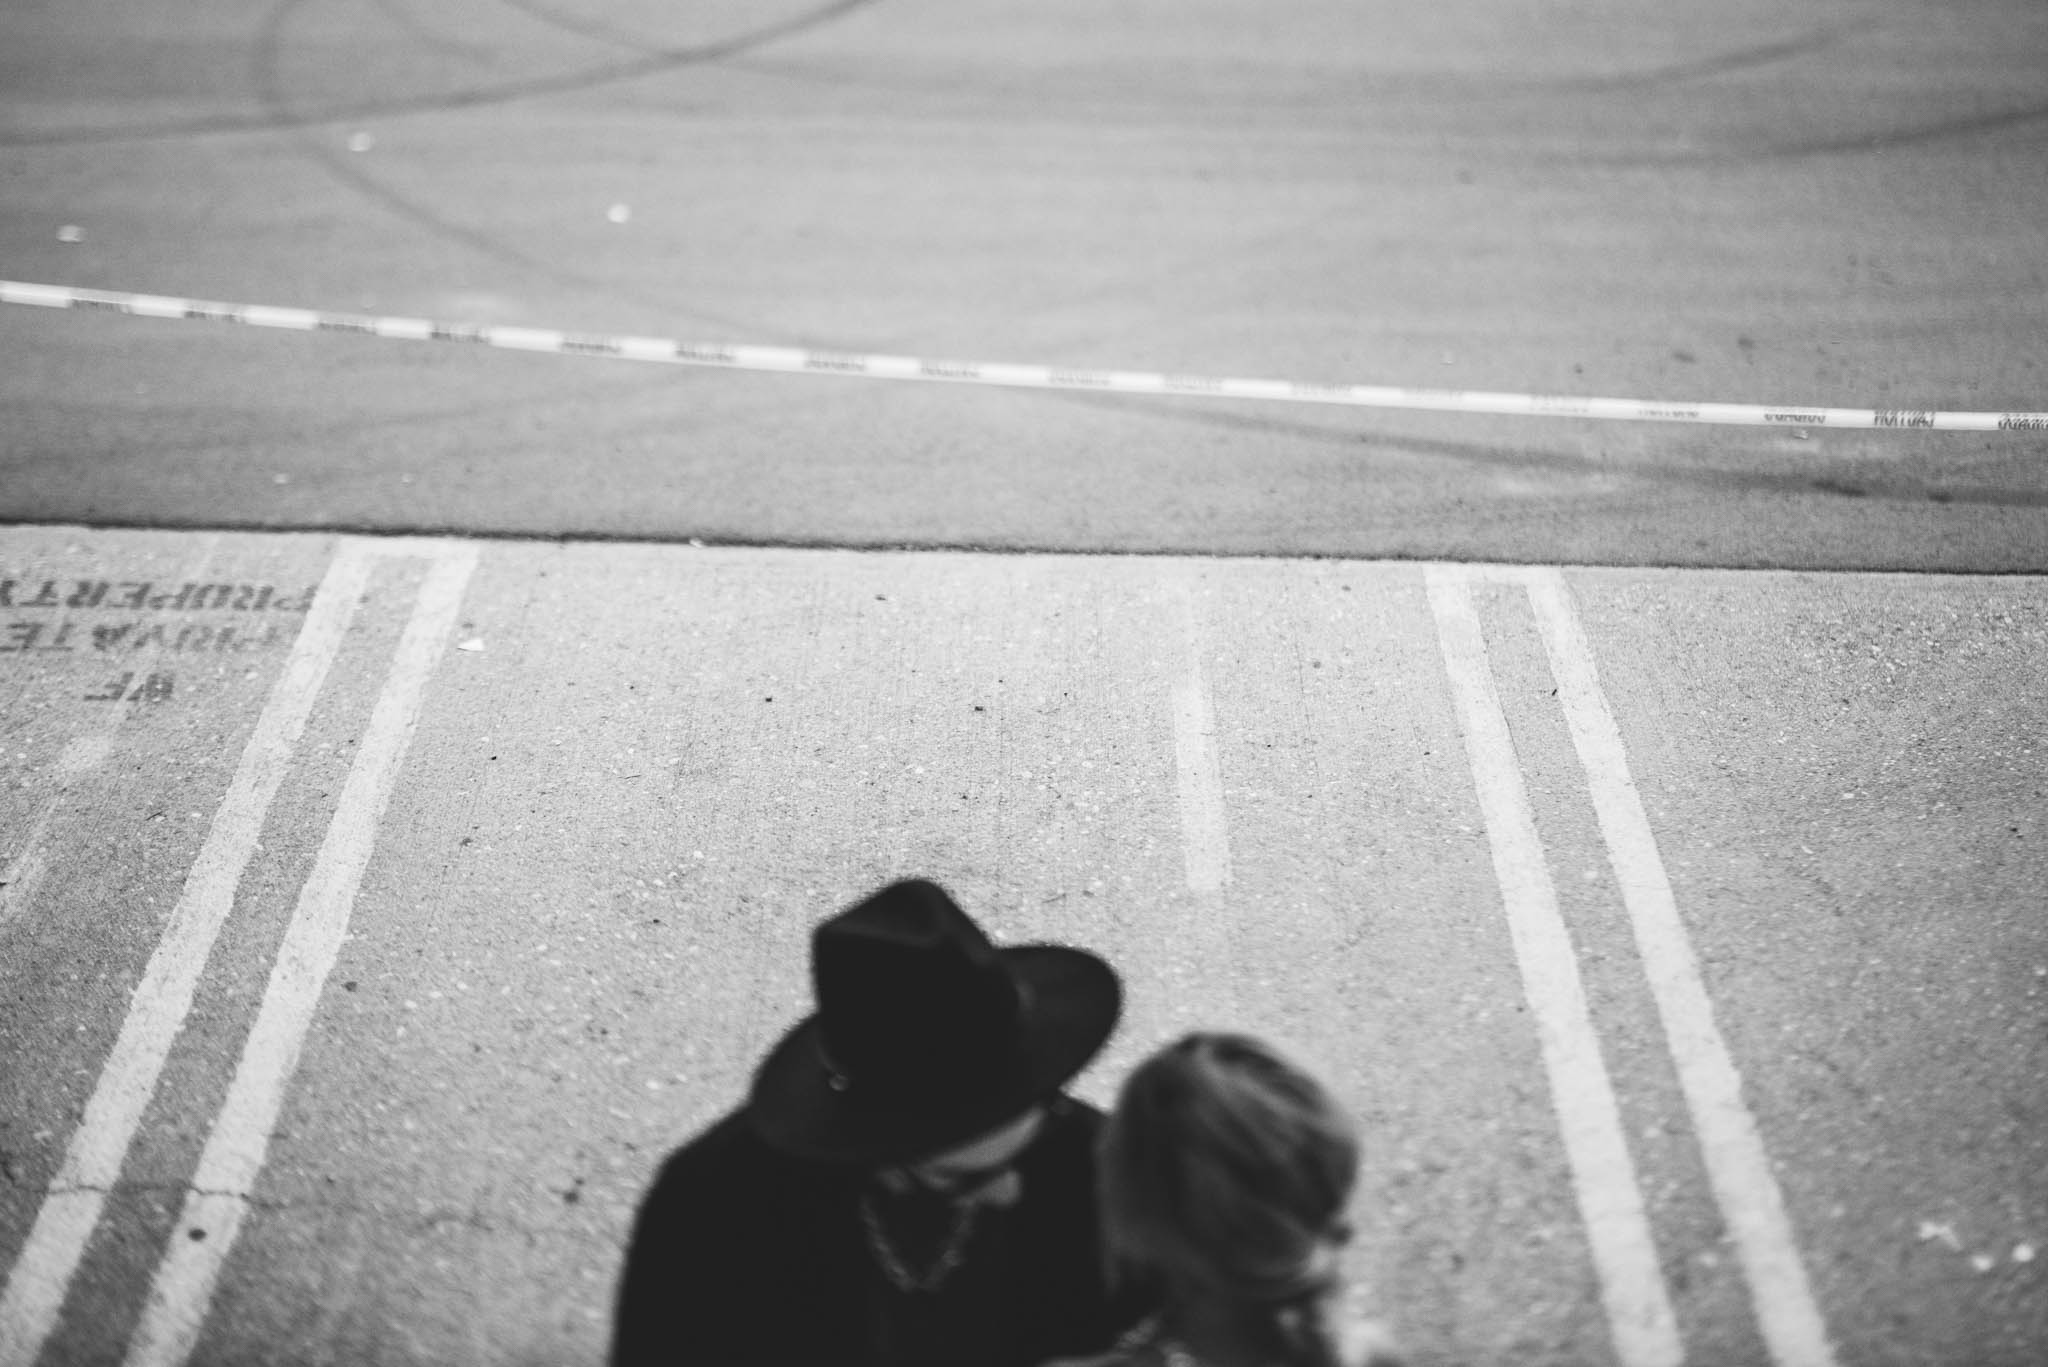 ©Isaiah-&-Taylor-Photography---Downtown-Los-Angeles-Skyline-Engagement-029.jpg